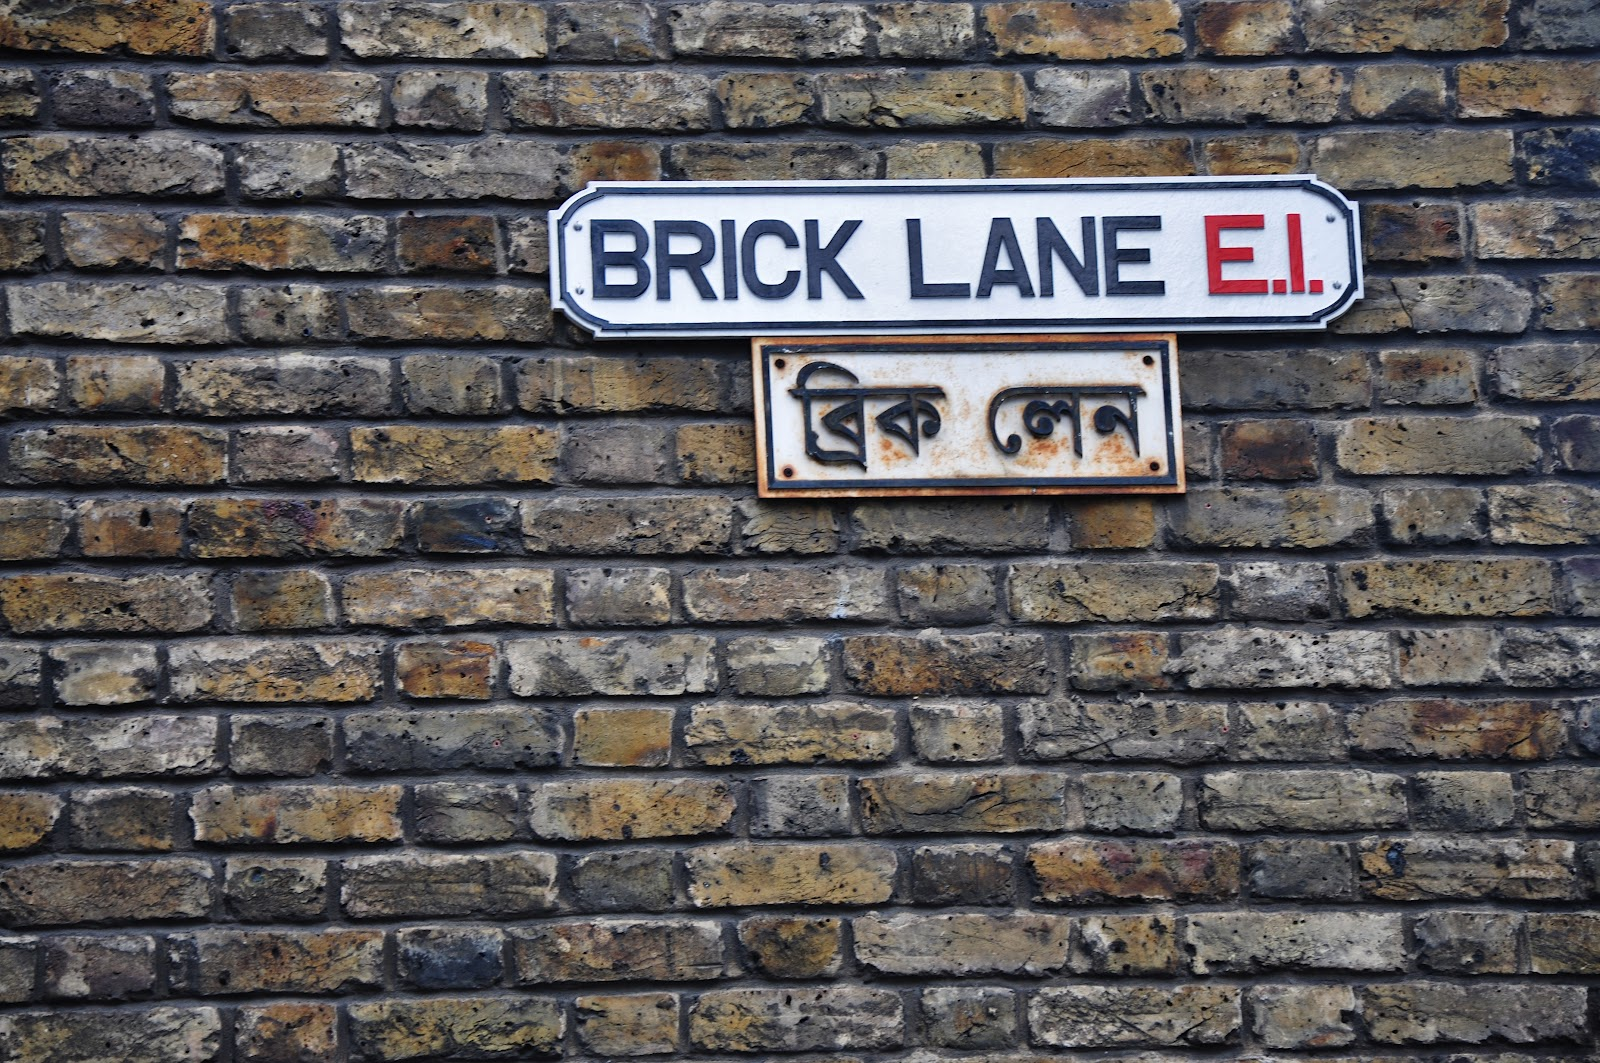 brick lane Brick lane, london online guide to brick lane's markets, galleries and restaurants what's on, opening times, how to get there.